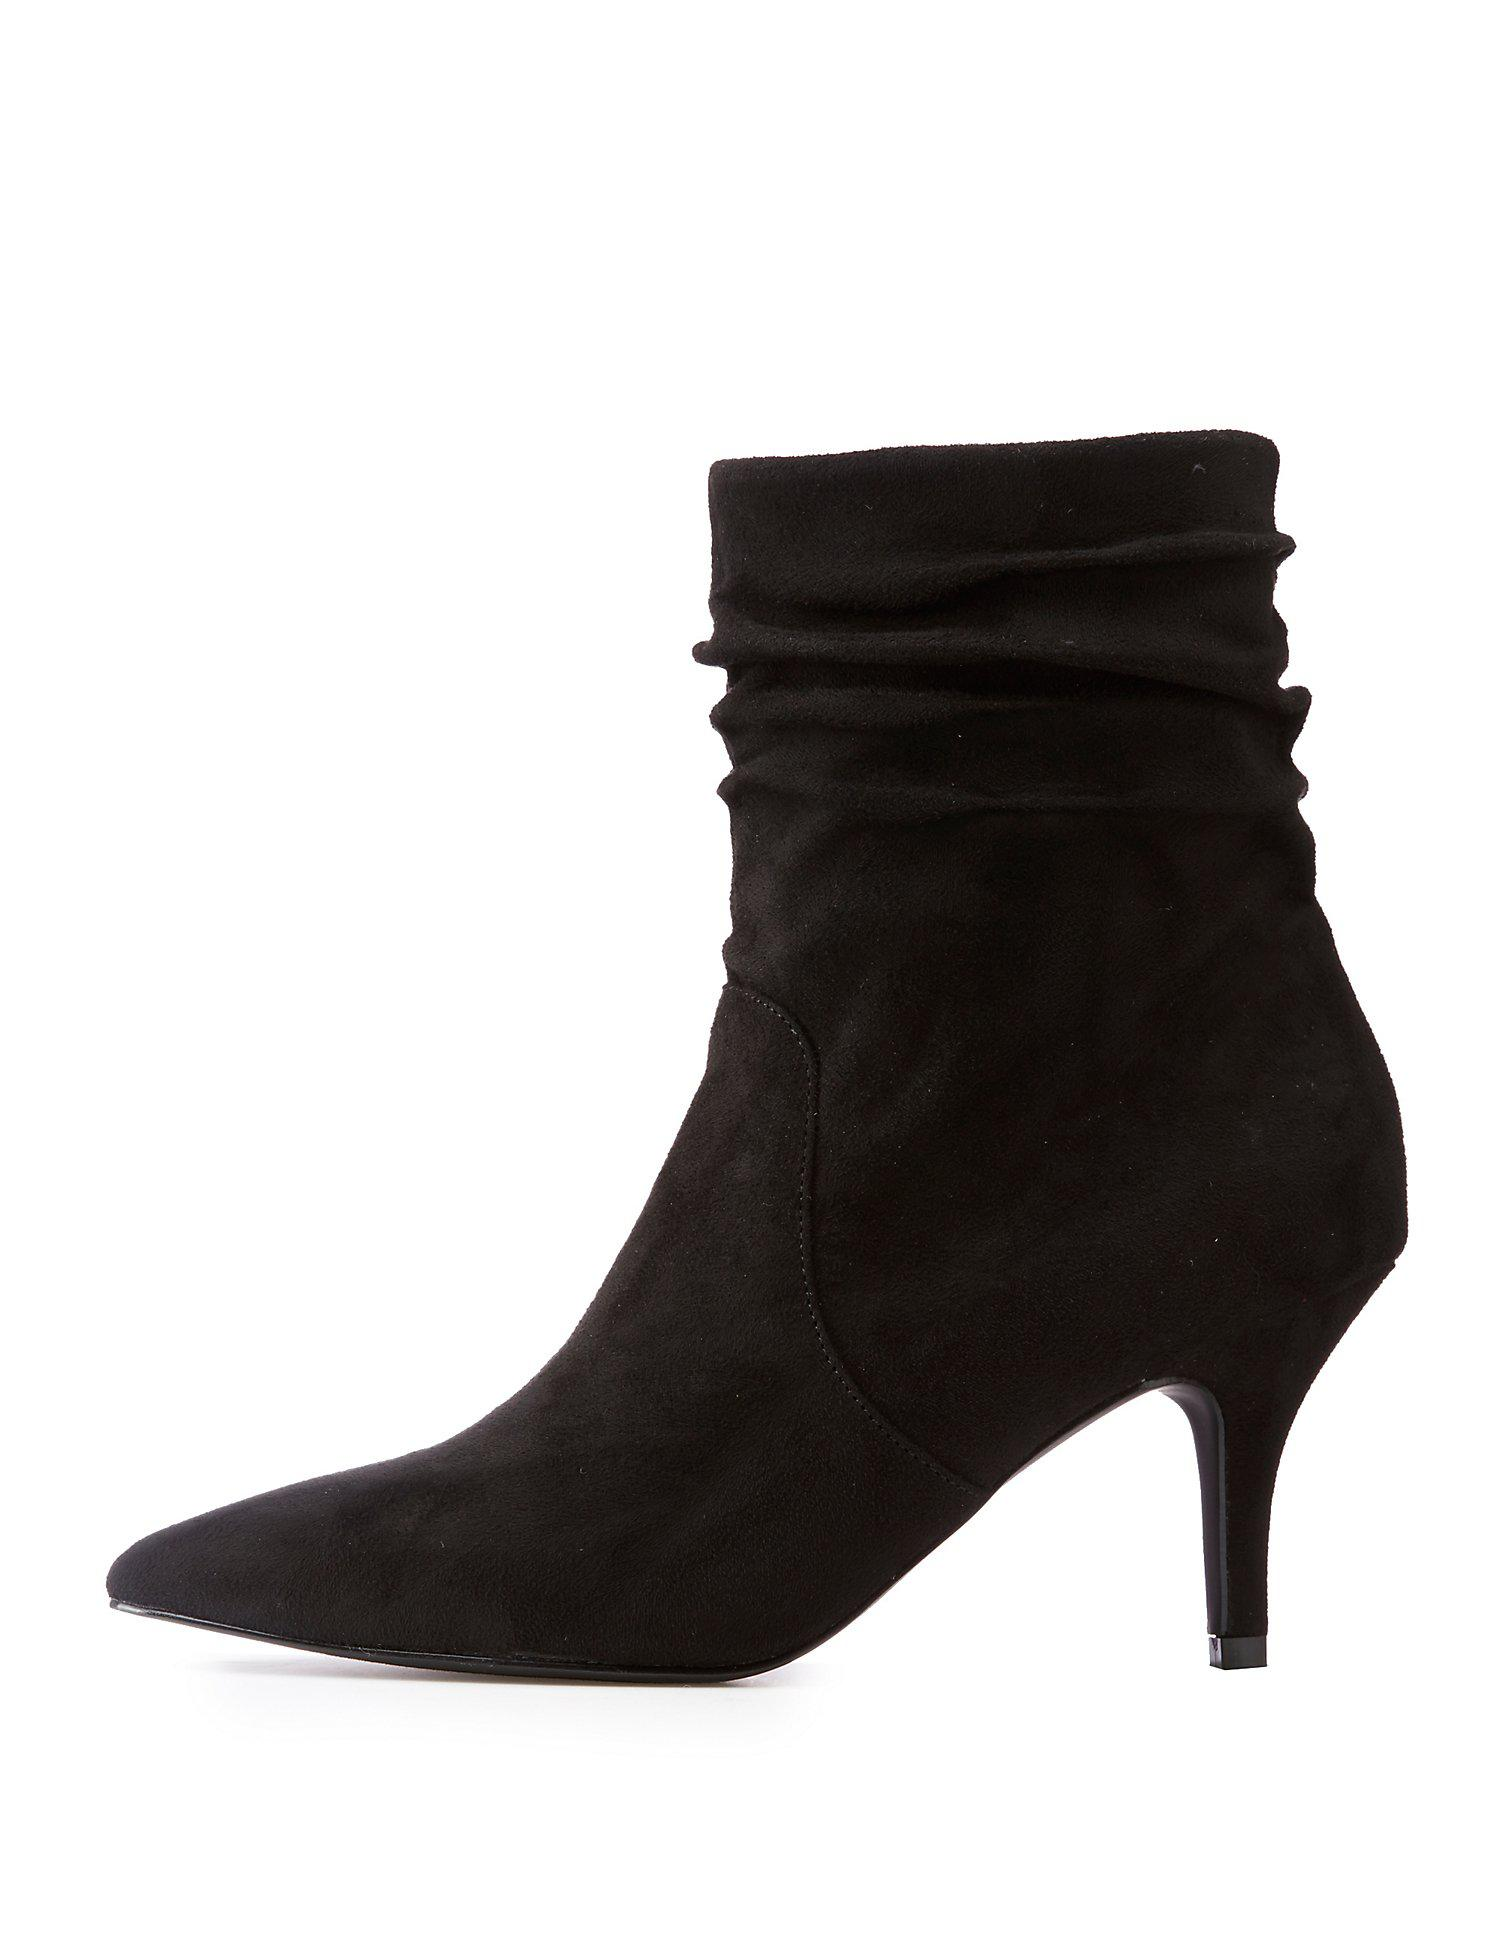 42f2bc79b25b Lyst - Charlotte Russe Ruched Pointed Toe Booties in Black